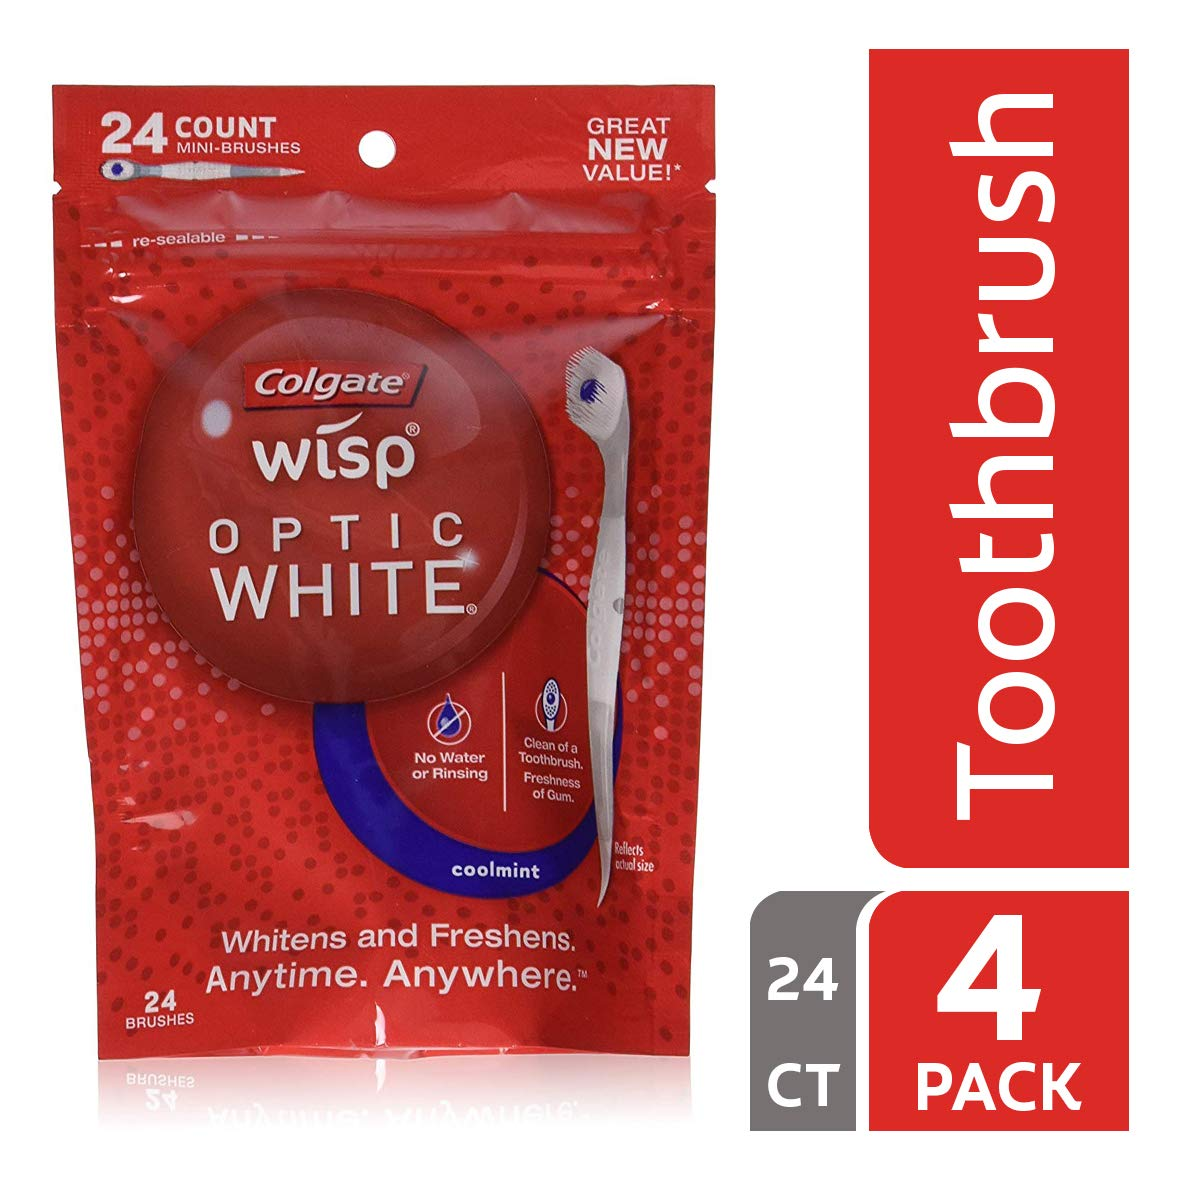 Colgate Optic White Wisp Disposable Mini Toothbrush, Cool Mint - 24 Count (4 Pack) by Colgate